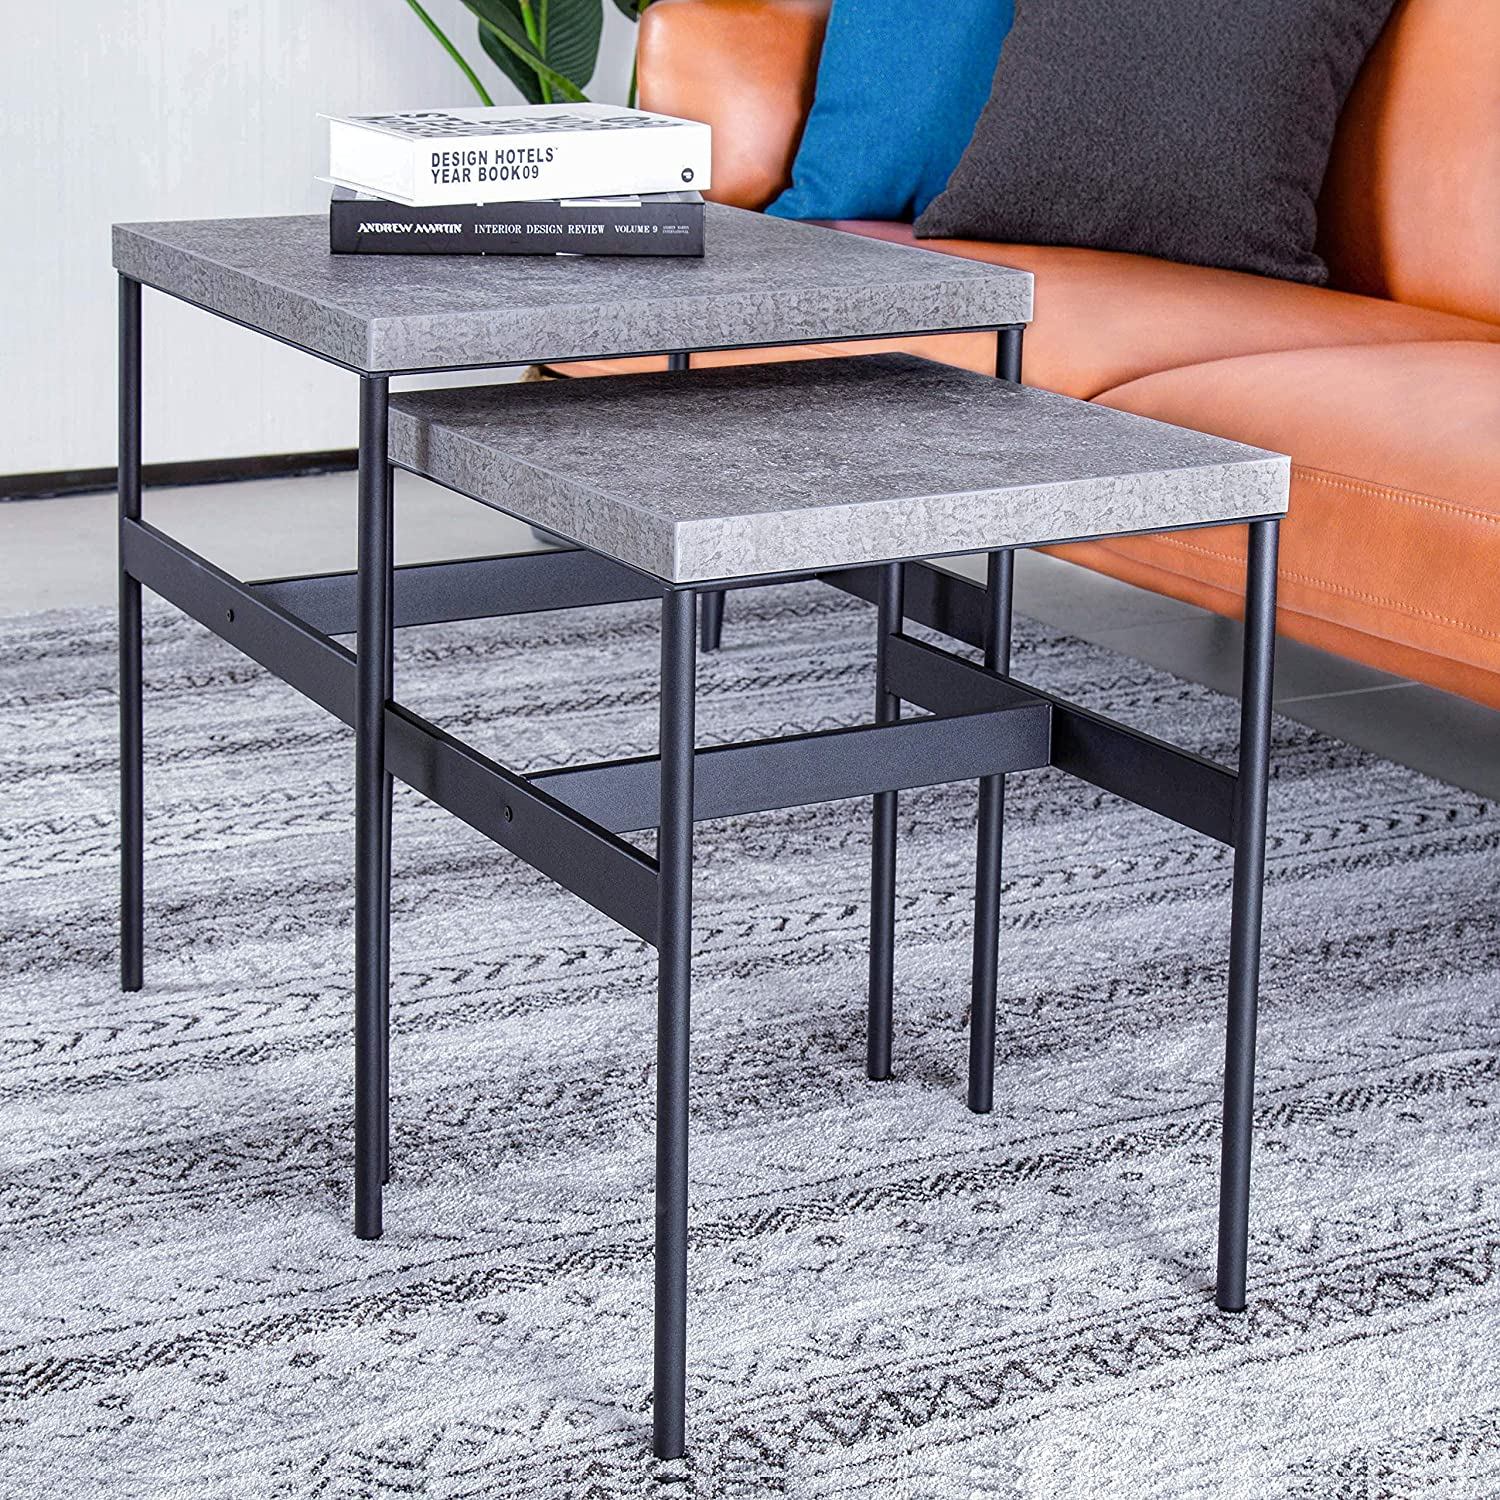 ALAMHI Modern Coffee Table 2 Nesting End Table Set Marble Print European Style Side Table Thickened Steel Frame for Living Room Sofa Laptop Decoration Home Office (Gray)